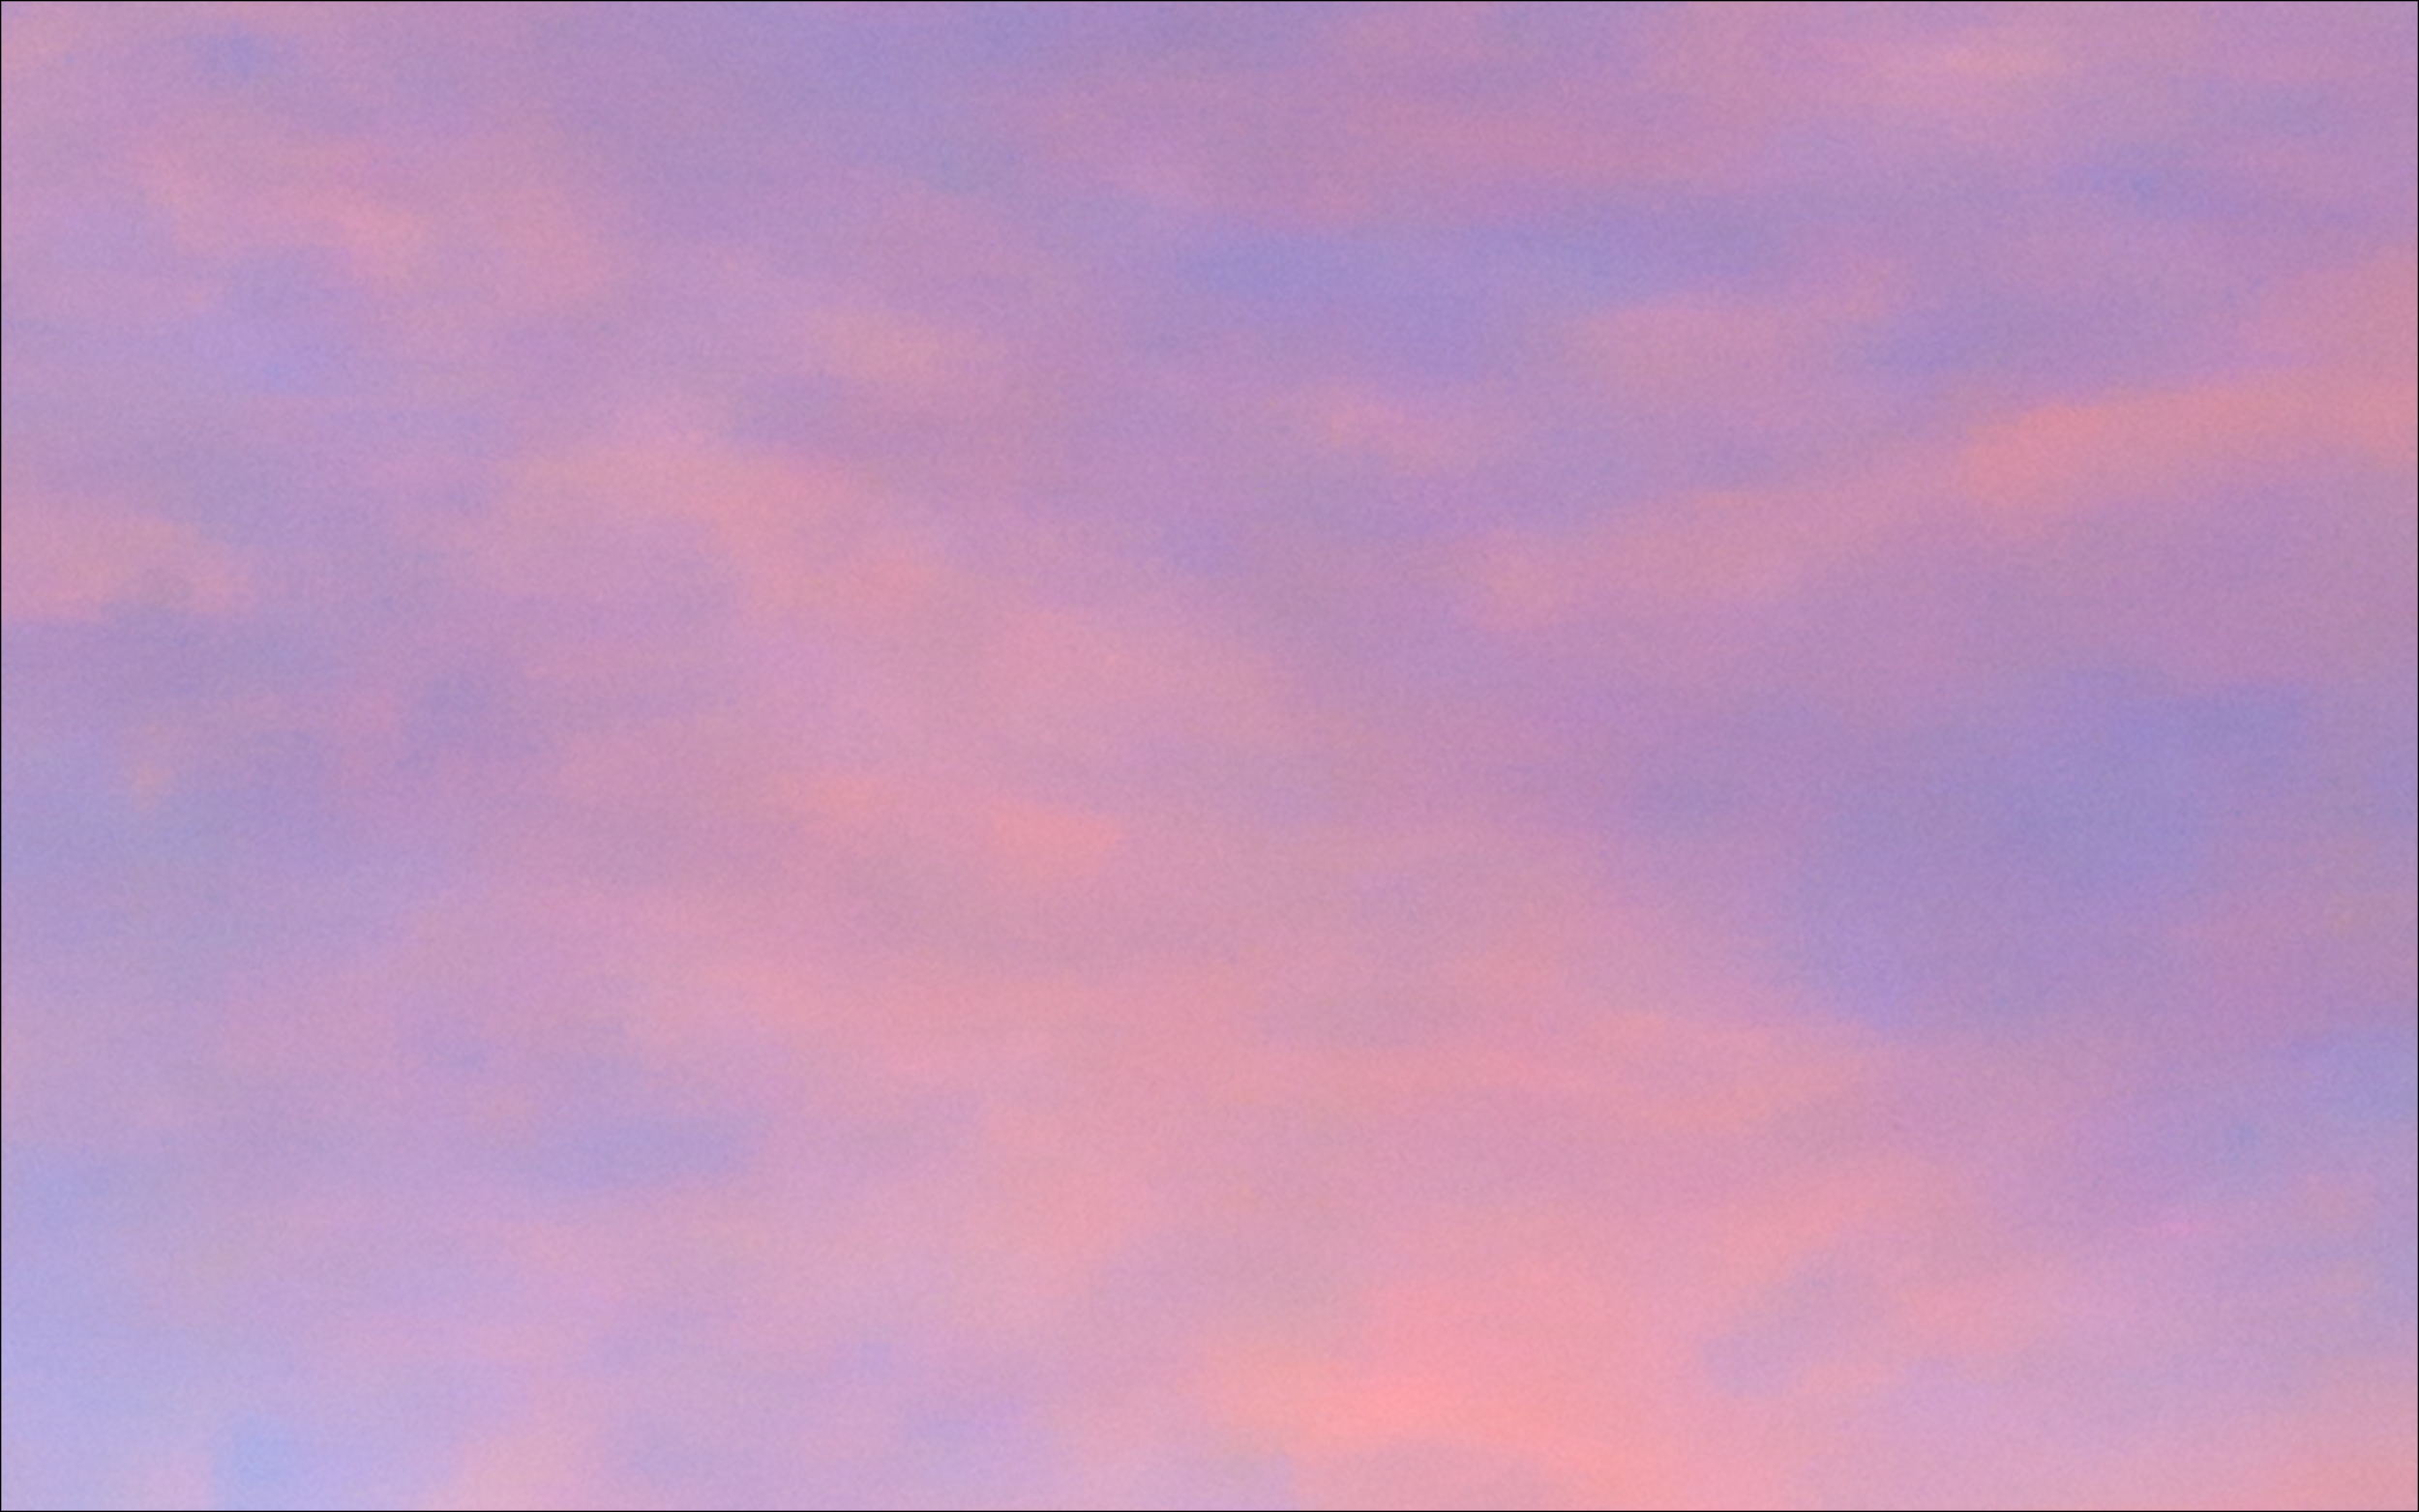 After Luminance Noise Reduction (Click to enlarge)